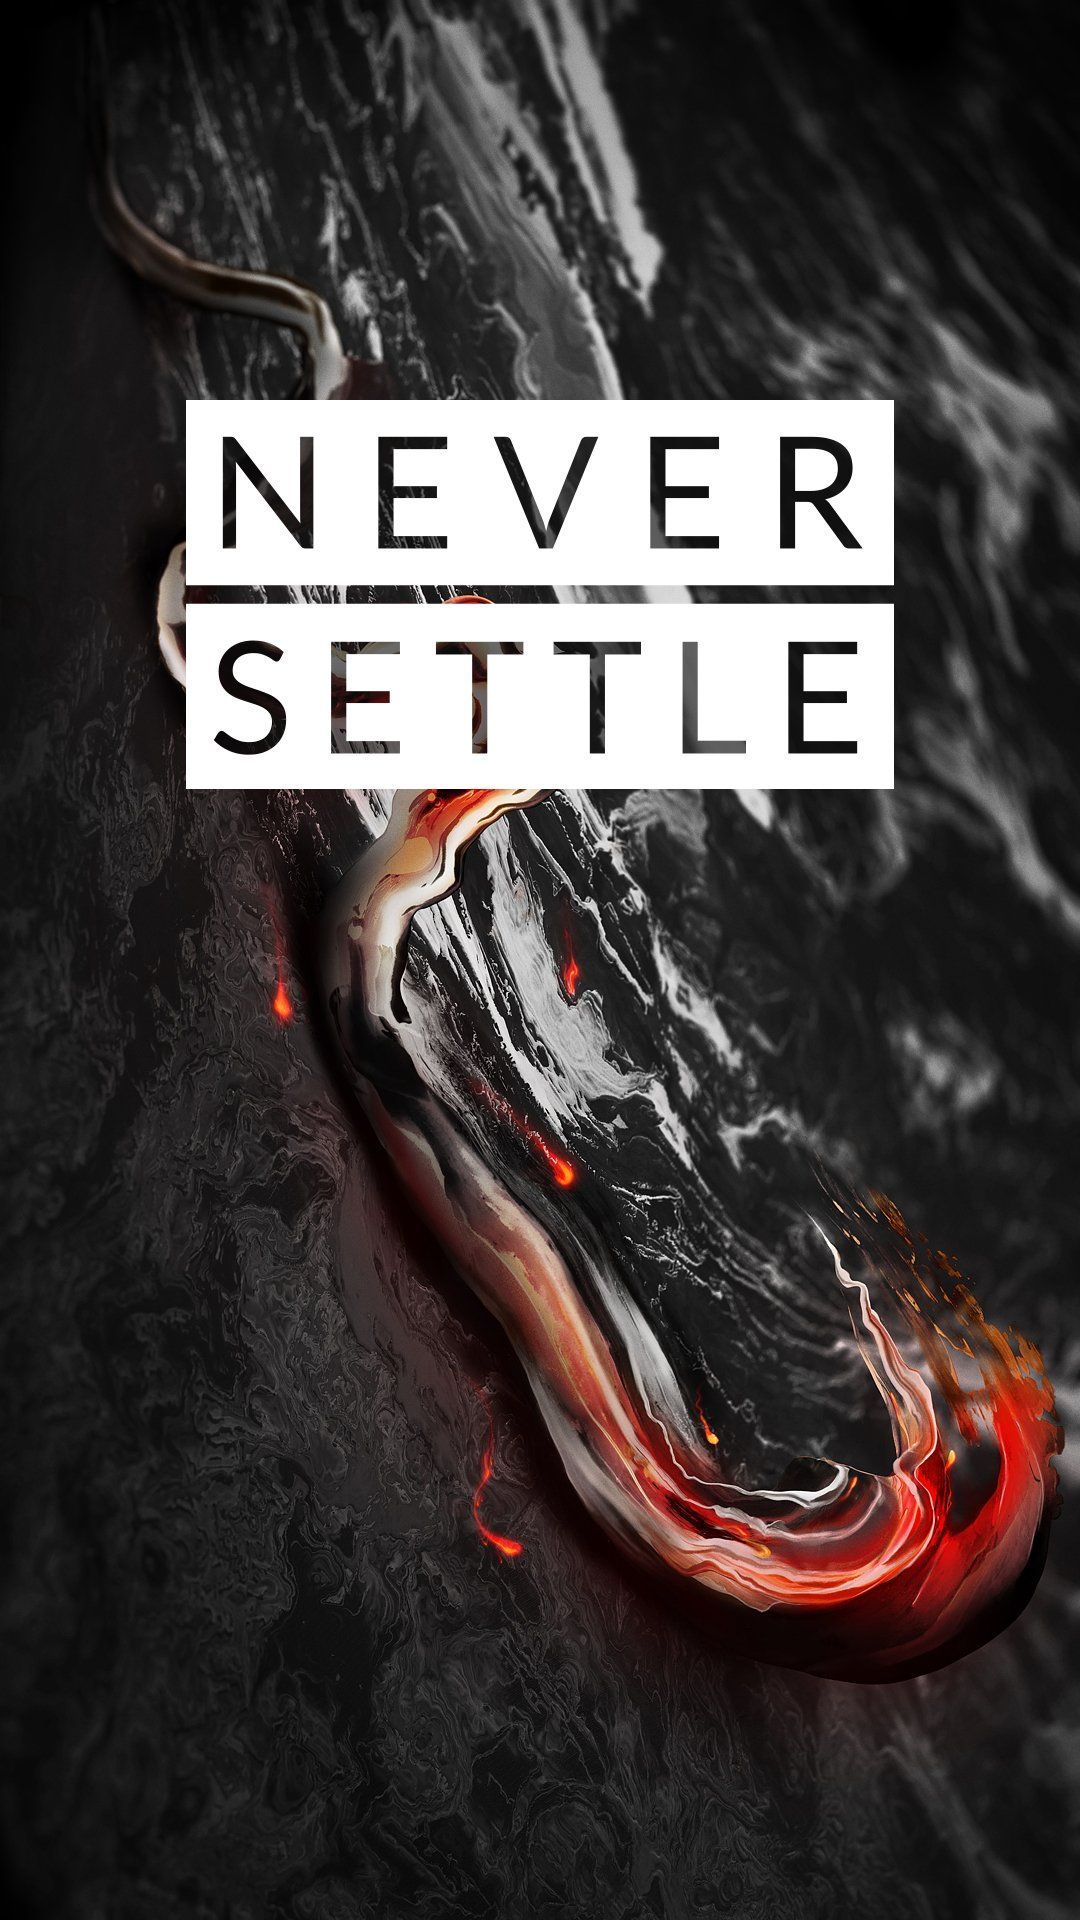 Download Oneplus Themed Never Settle Wallpaper In Midnight Black